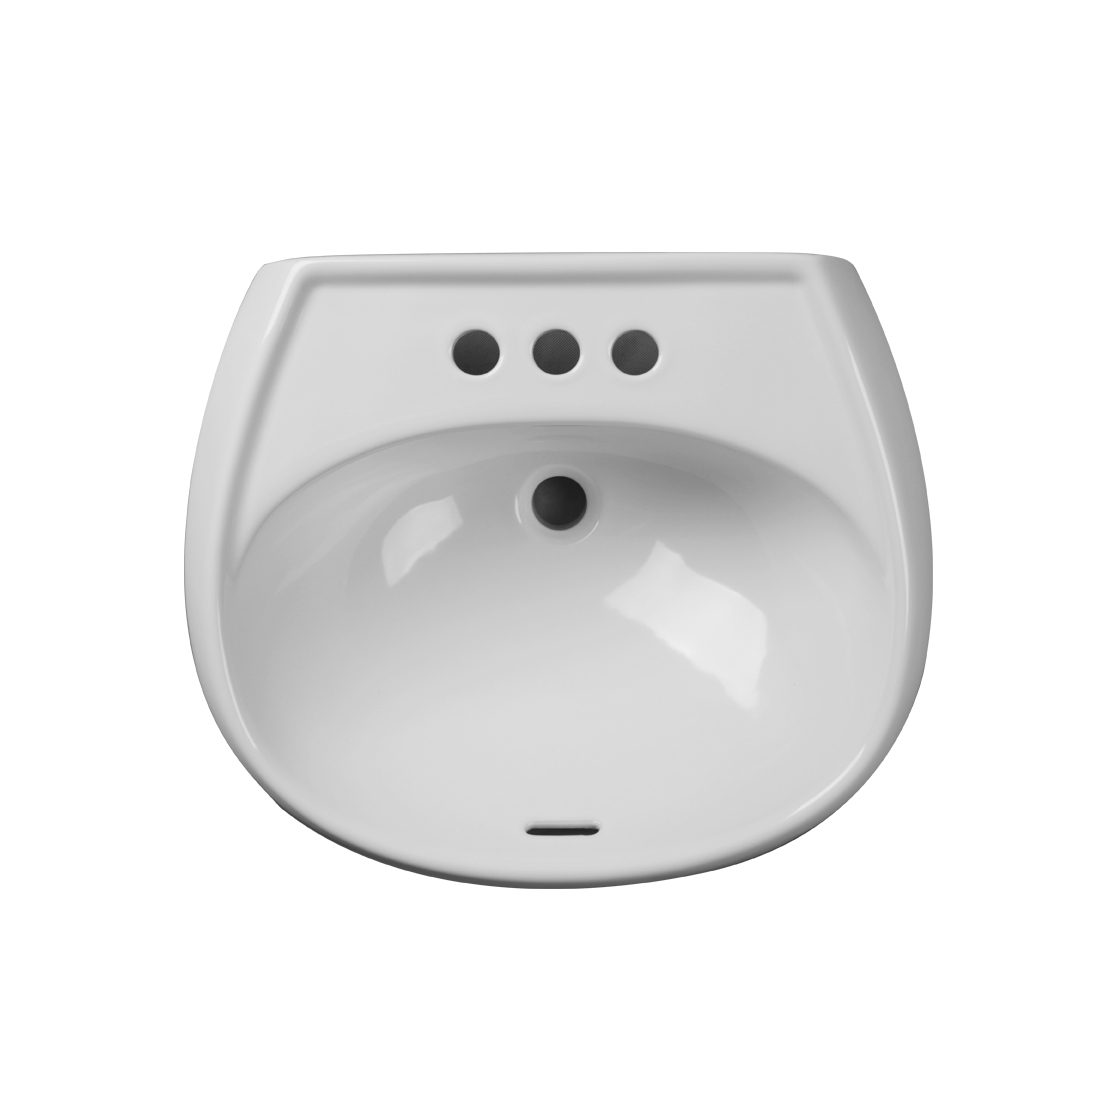 New Orleans Pedestal Lavatory 3Hole 4inch White Up View